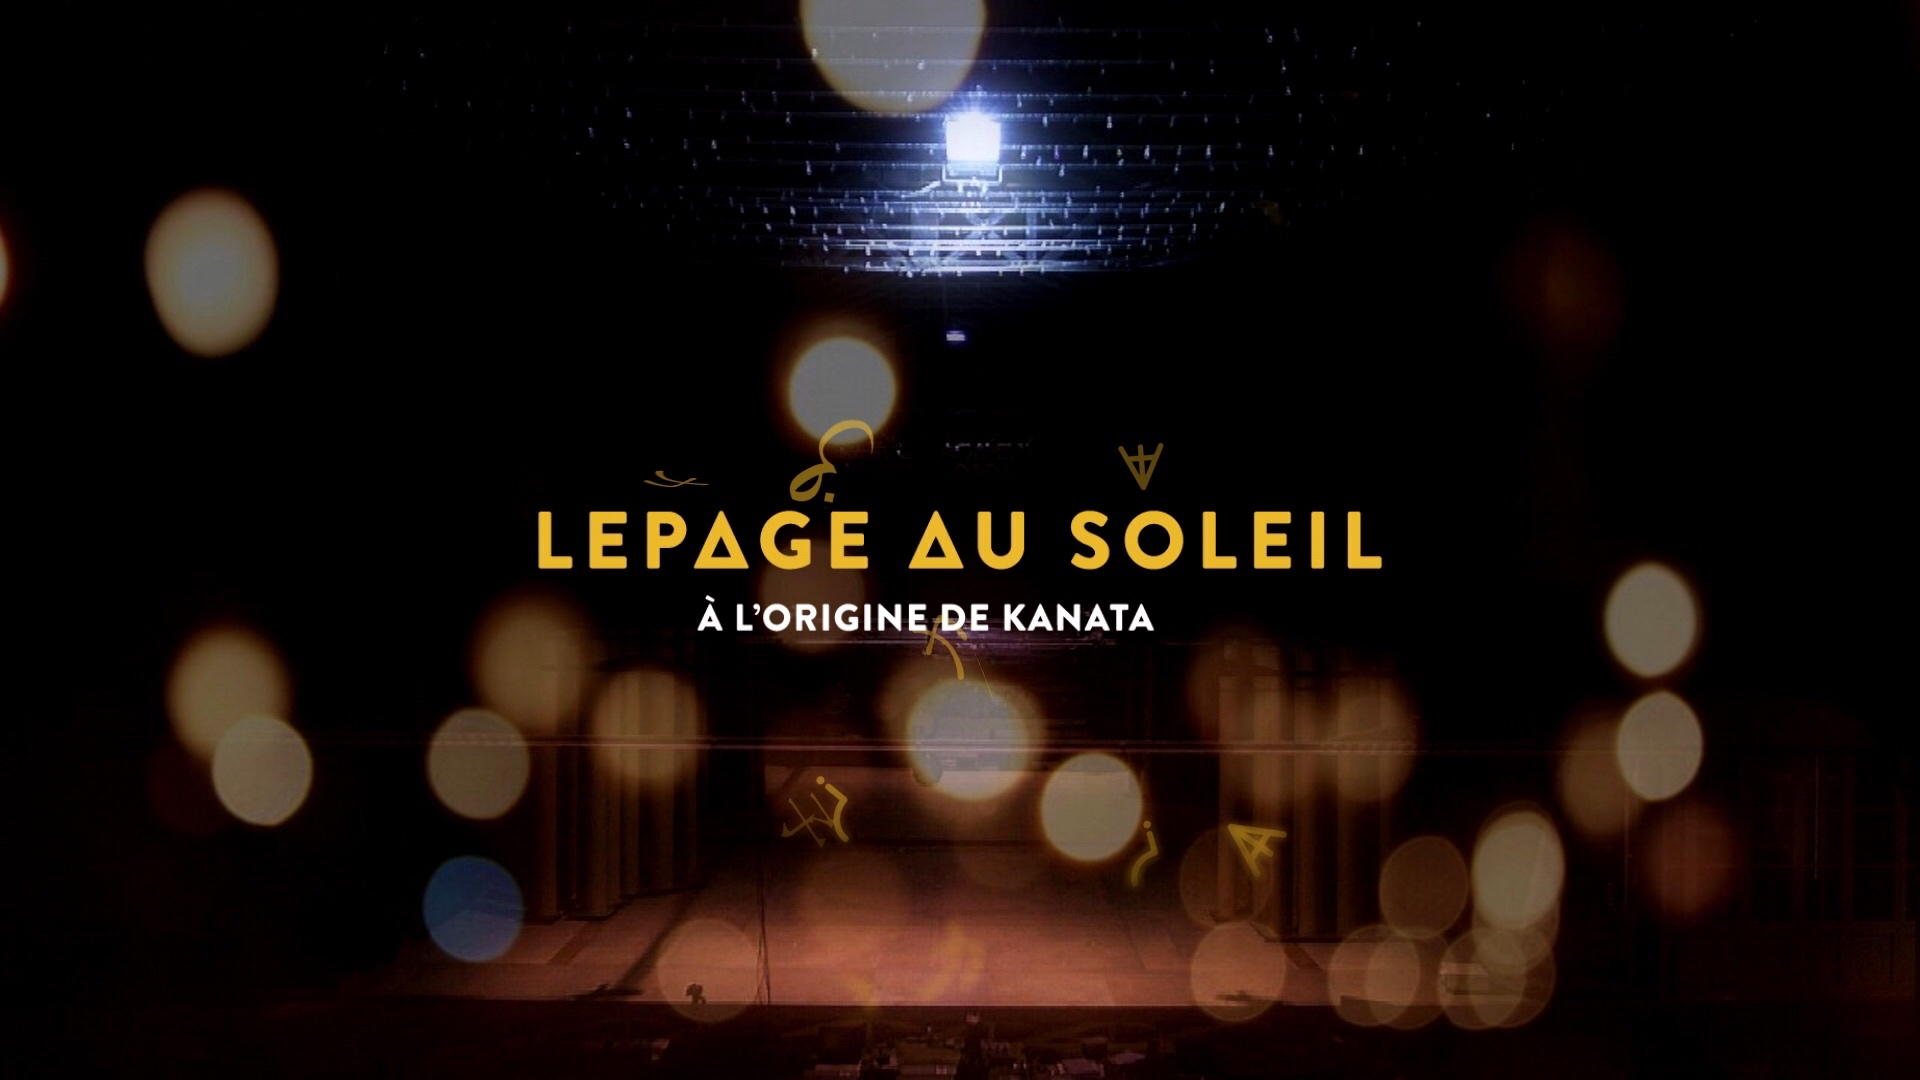 Lepage au soleil: At the Origins of Kanata – Appropriation